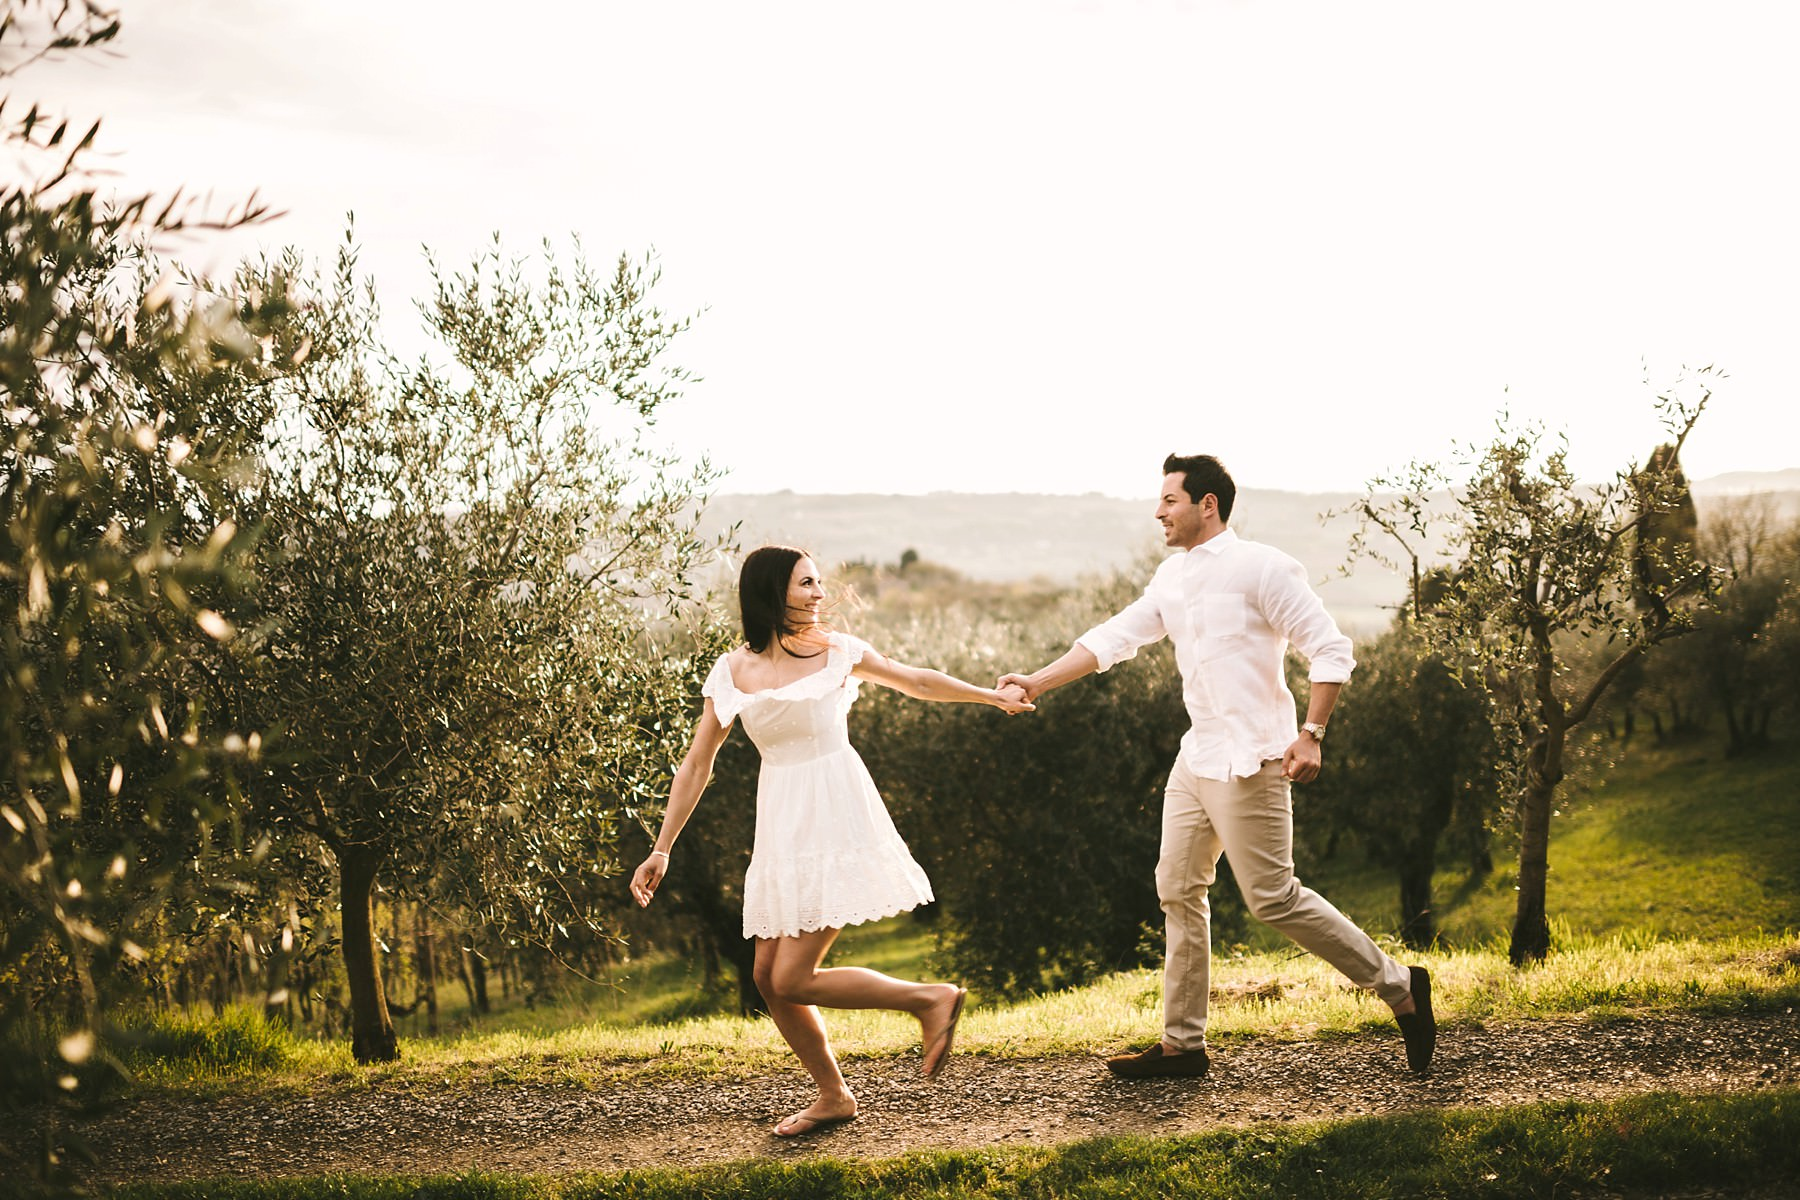 Lovely and bucolic photo in the Chianti hills countryside of Florence. Breathtaking scenery with olive trees on the background where the golden hour falls perfectly